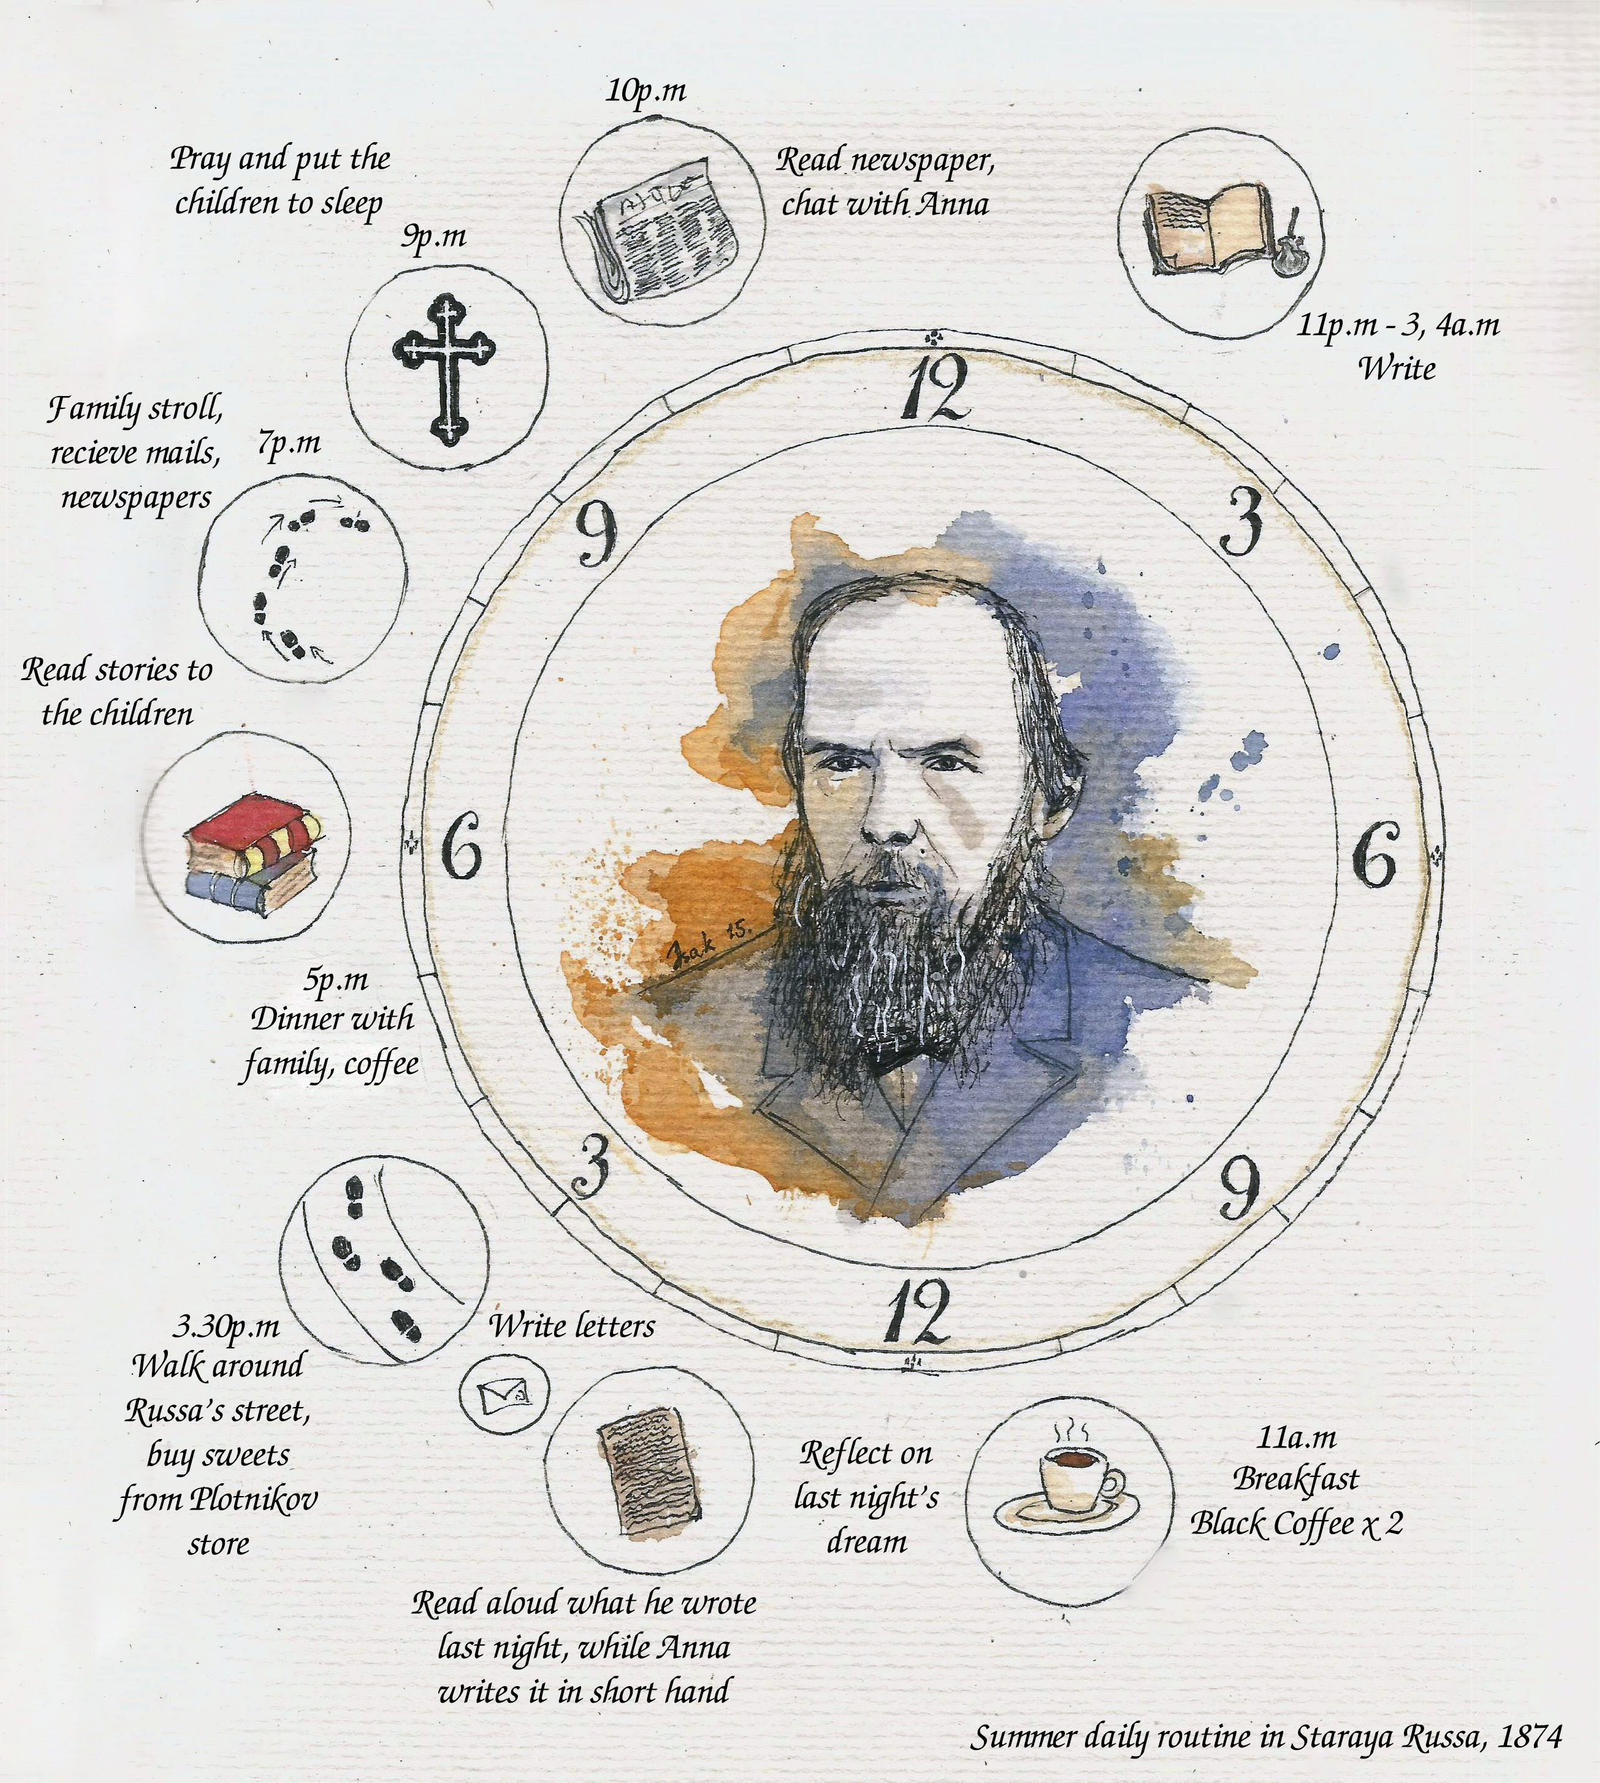 A Day in the Life of Dostoevsky